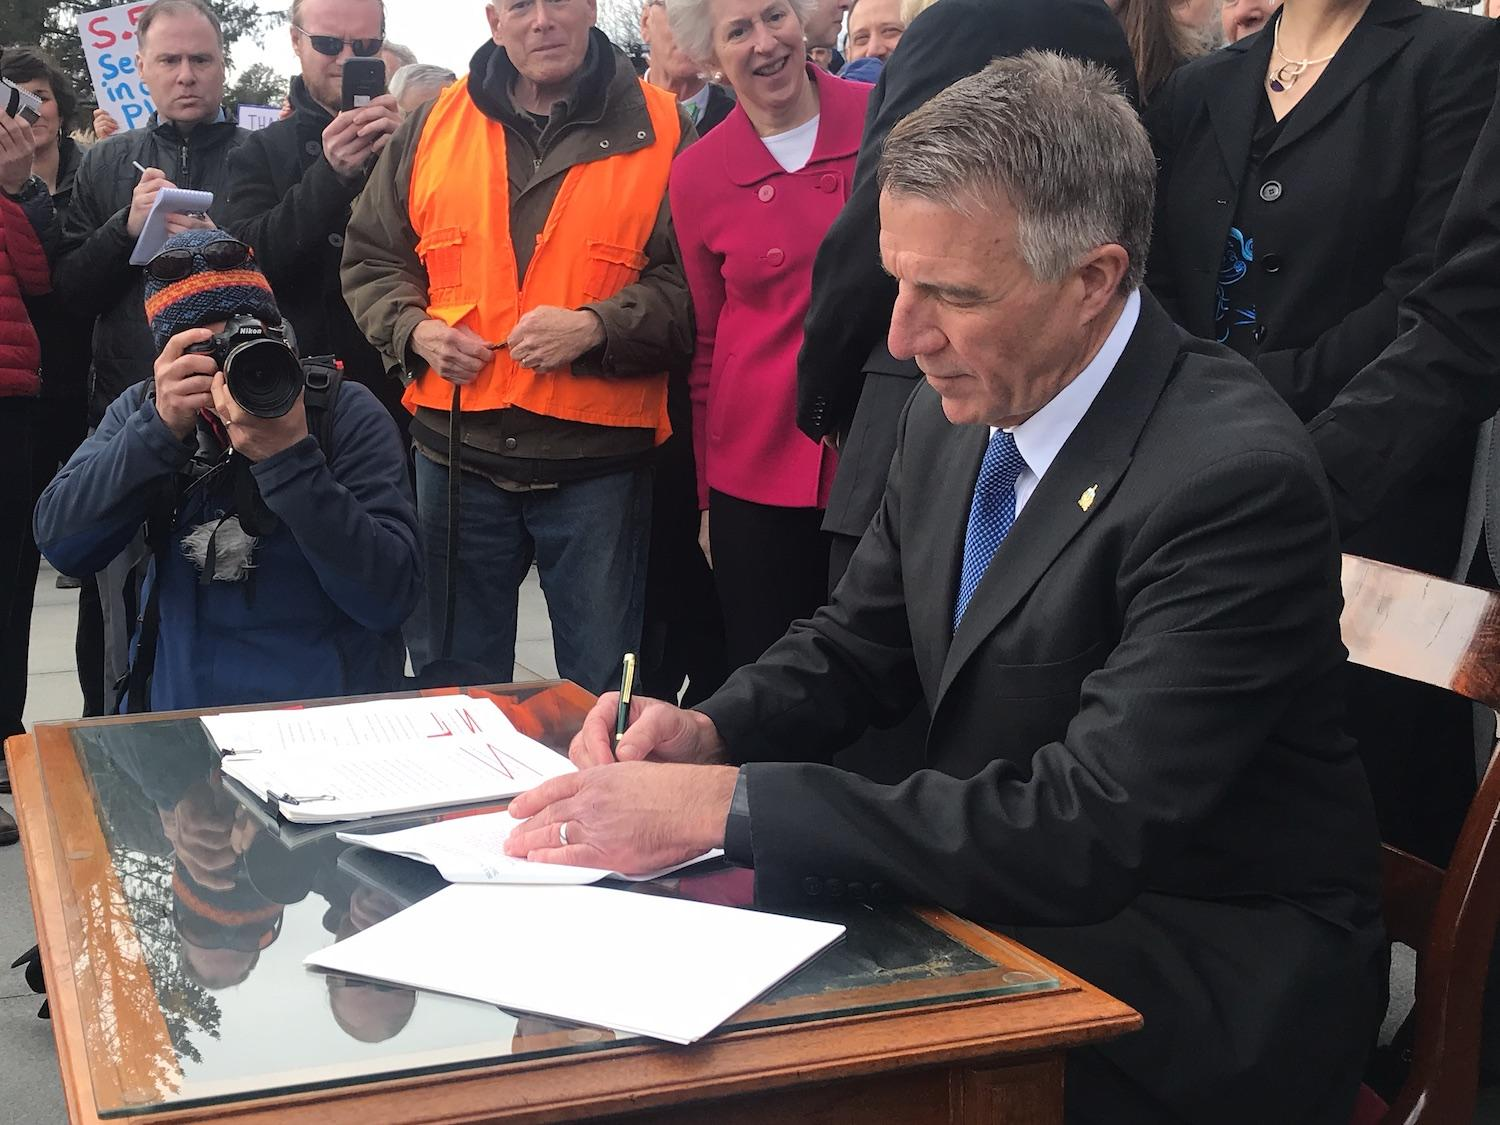 Gov. Phil Scott signs three pieces of gun control legislation amid boos and cheers on the front steps of the statehouse Wednesday, April 11, 2018. Photo by Emily Alfin Johnson for VPR.